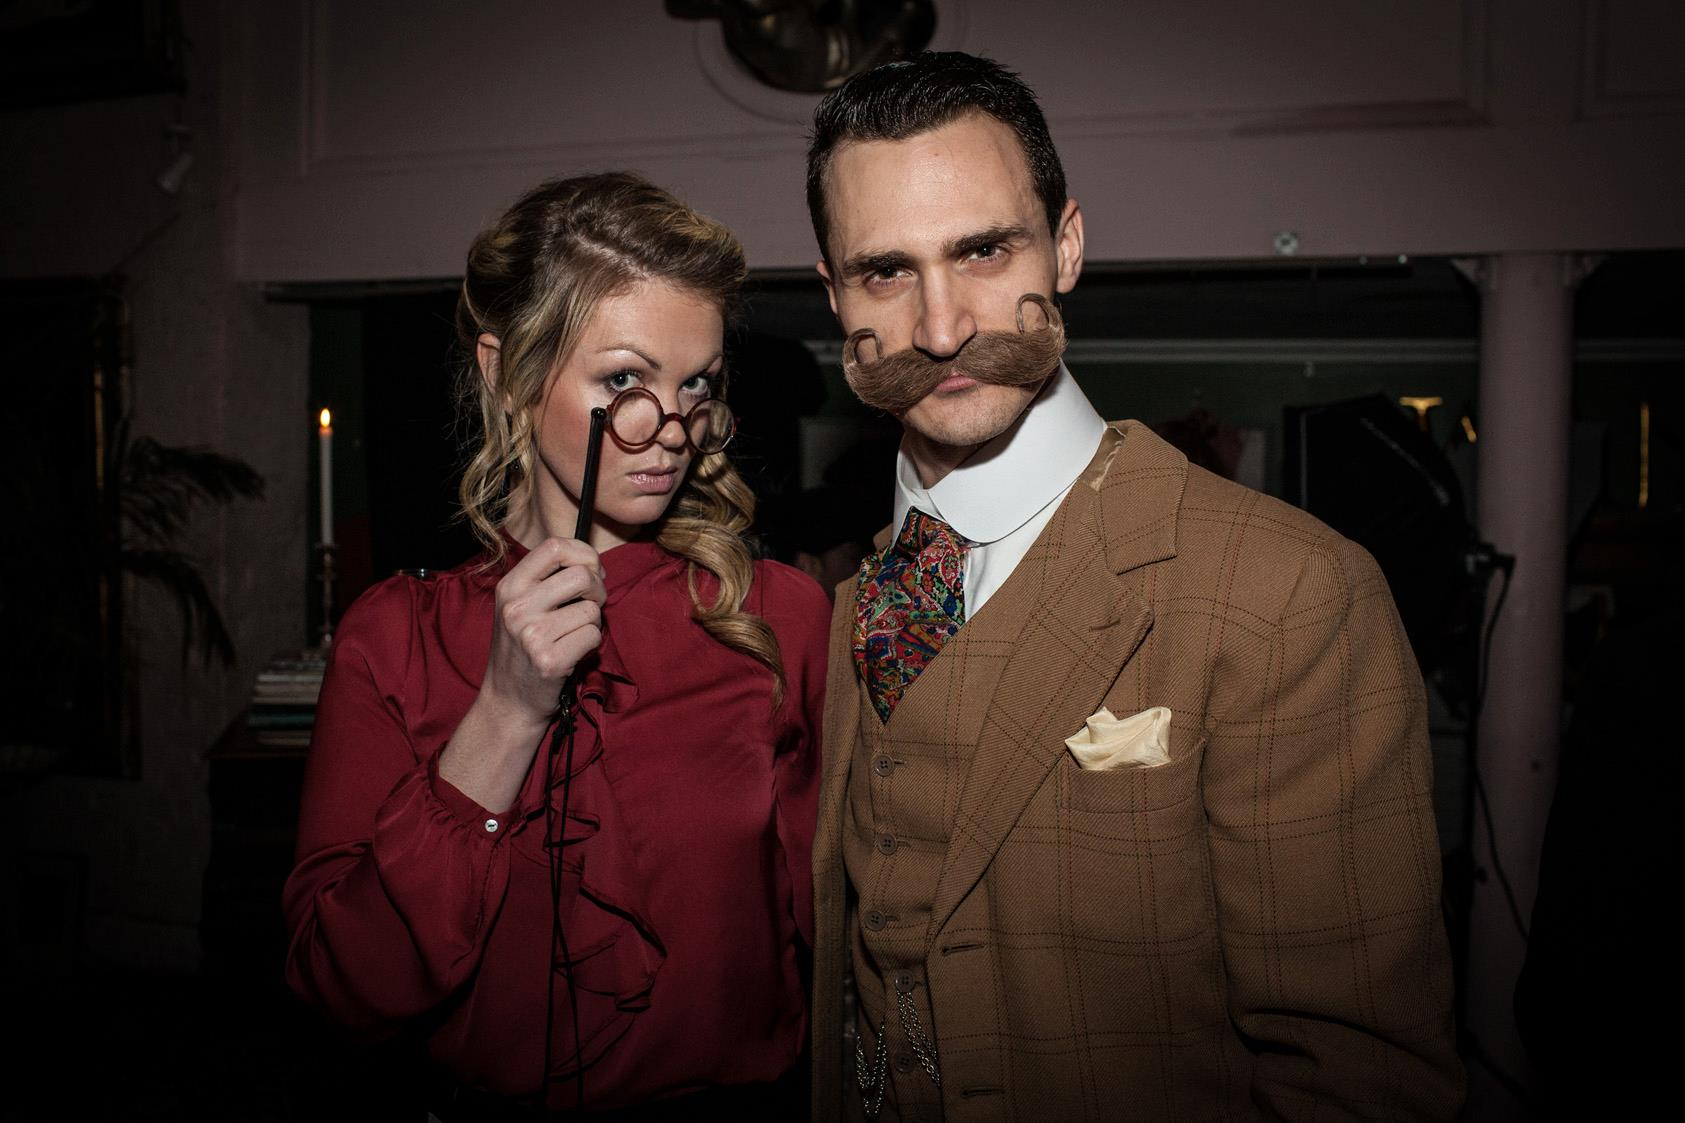 Searching for the truth in our Victorian whodunit